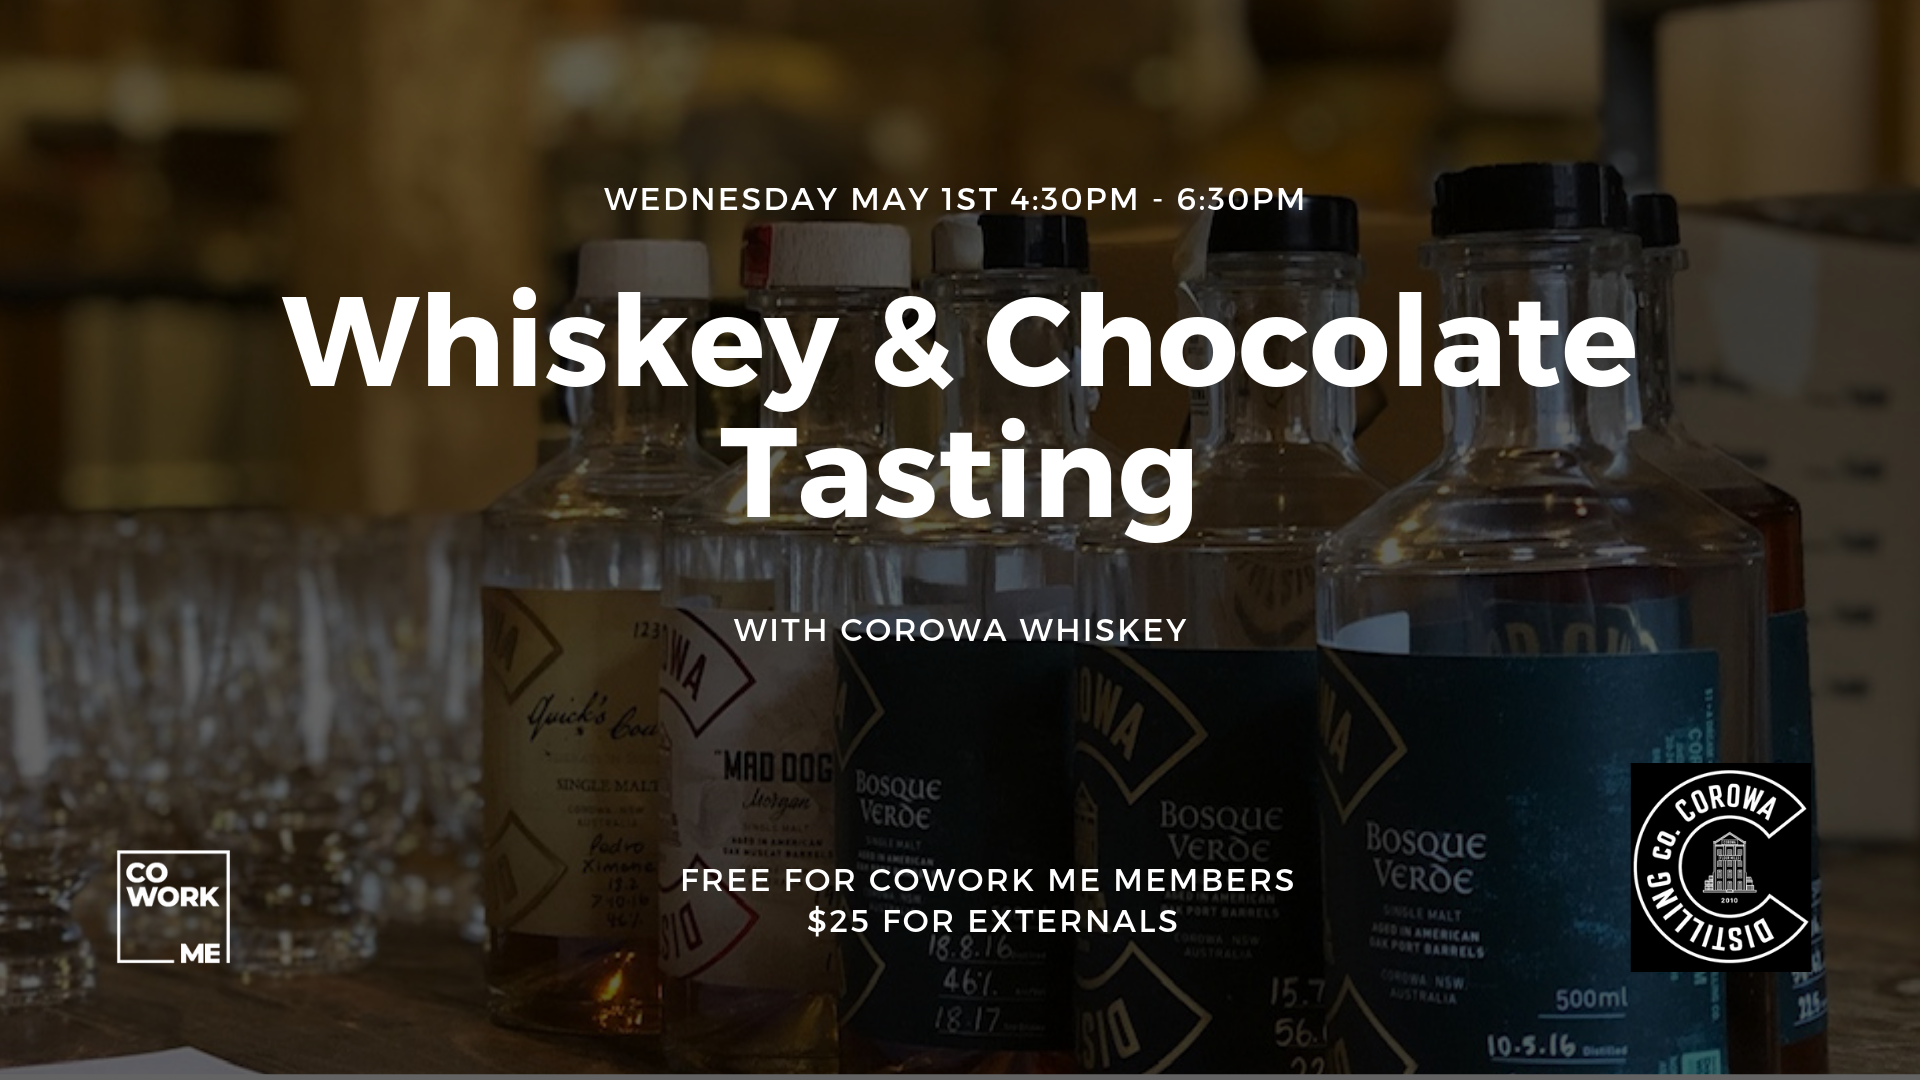 Whiskey & Chocolate Tasting